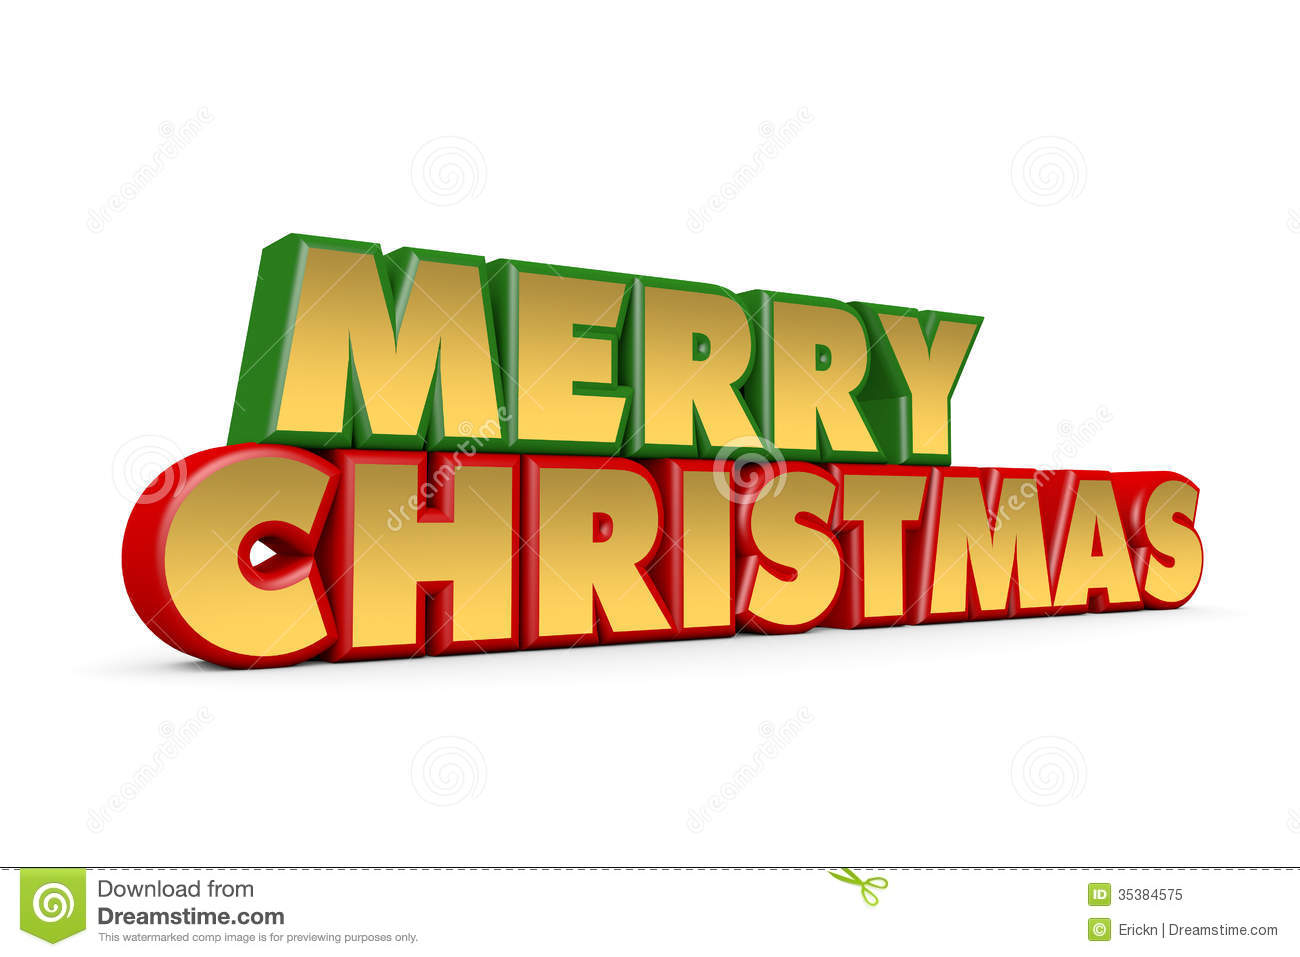 Merry Christmas Greetings Royalty Free Stock Photo - Image ...